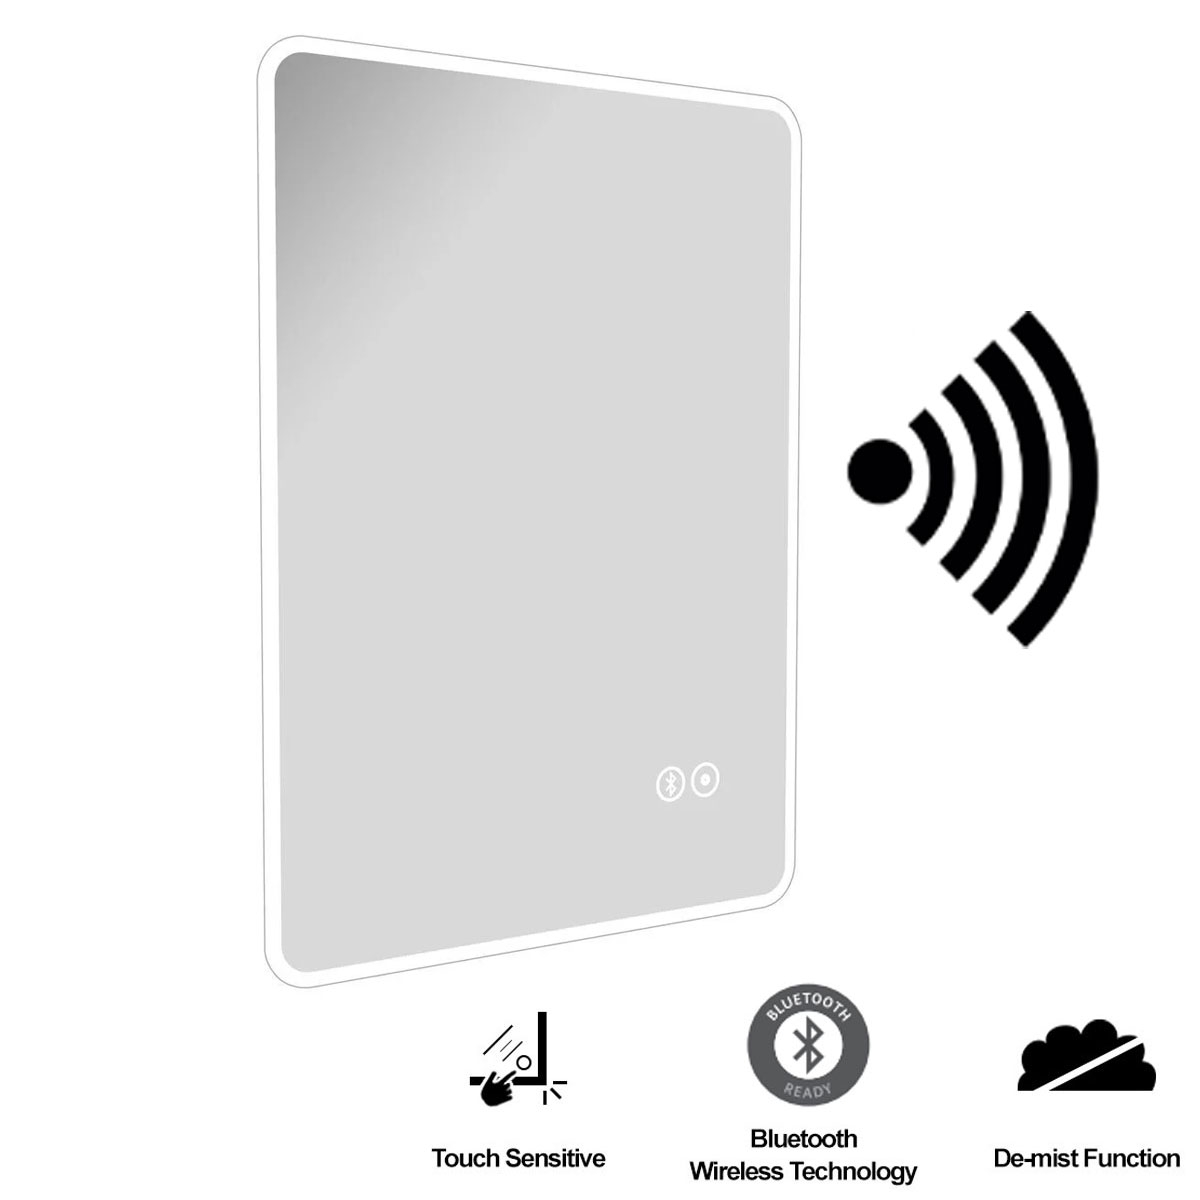 Cali LED Touch Sensor Ambient Bathroom Mirror 700mm H x 500 W with Bluetooth and De-Mist